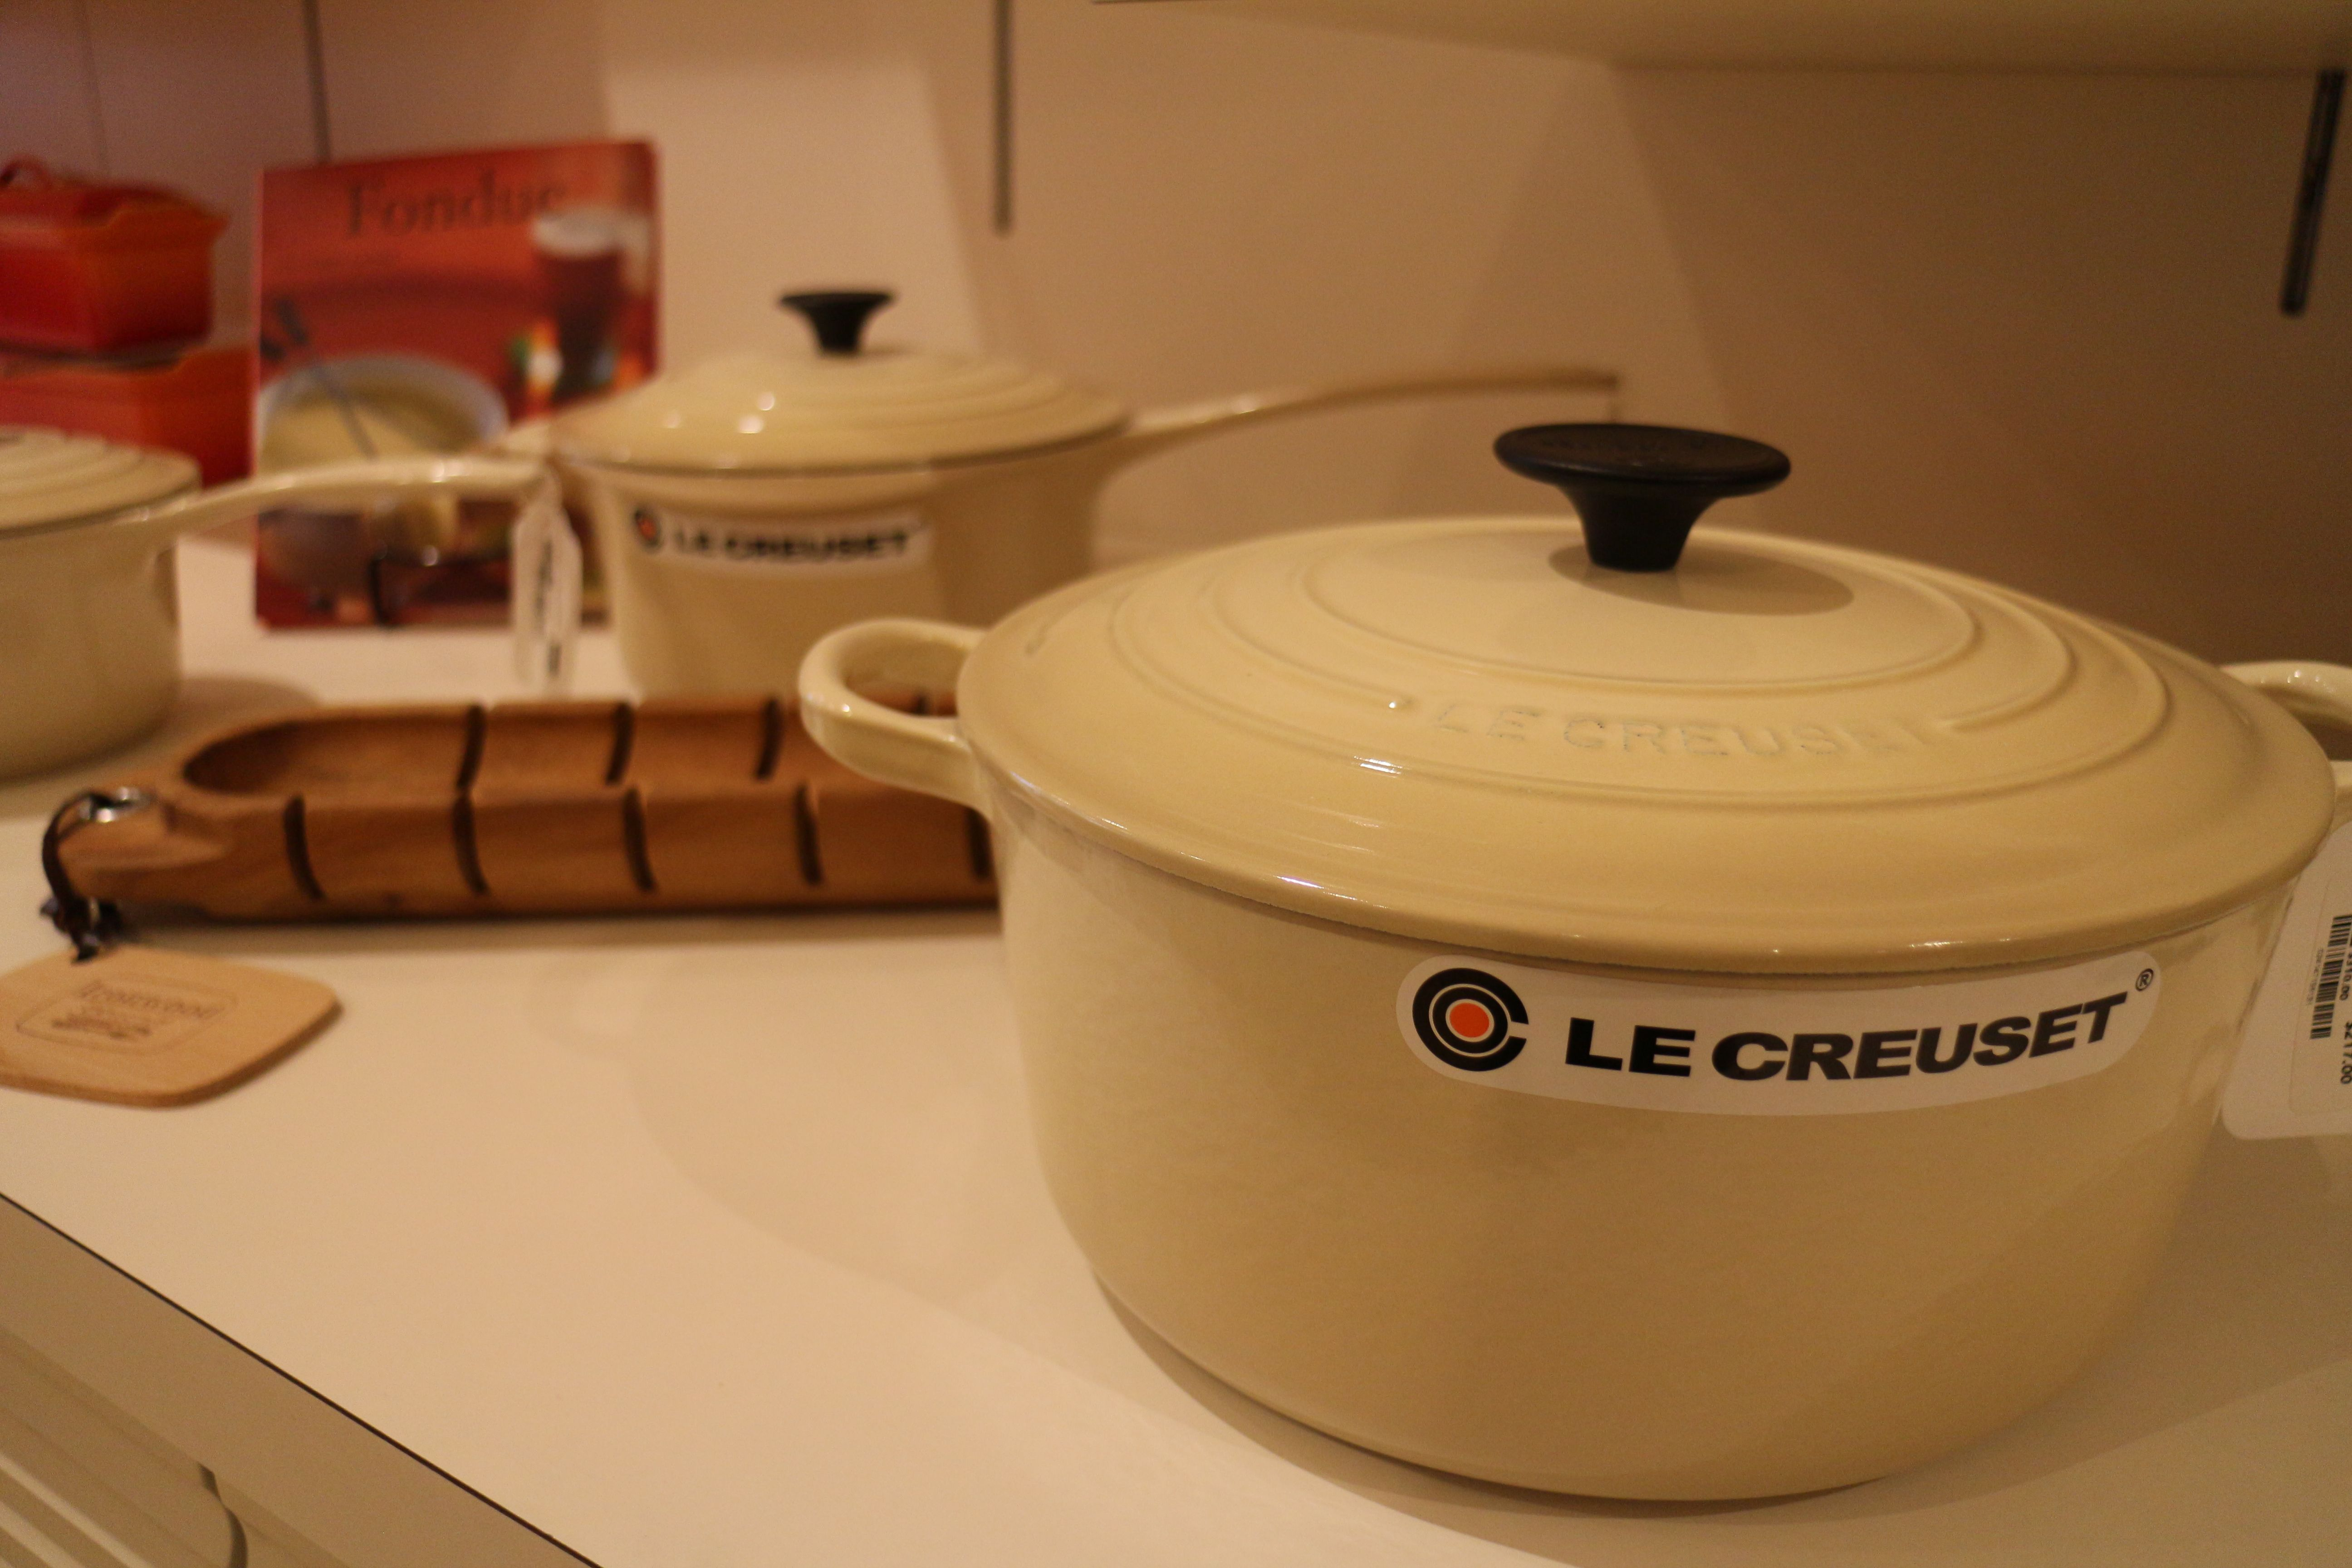 Dune By Le Creuset Suite 488 Outlets Of Mississippi